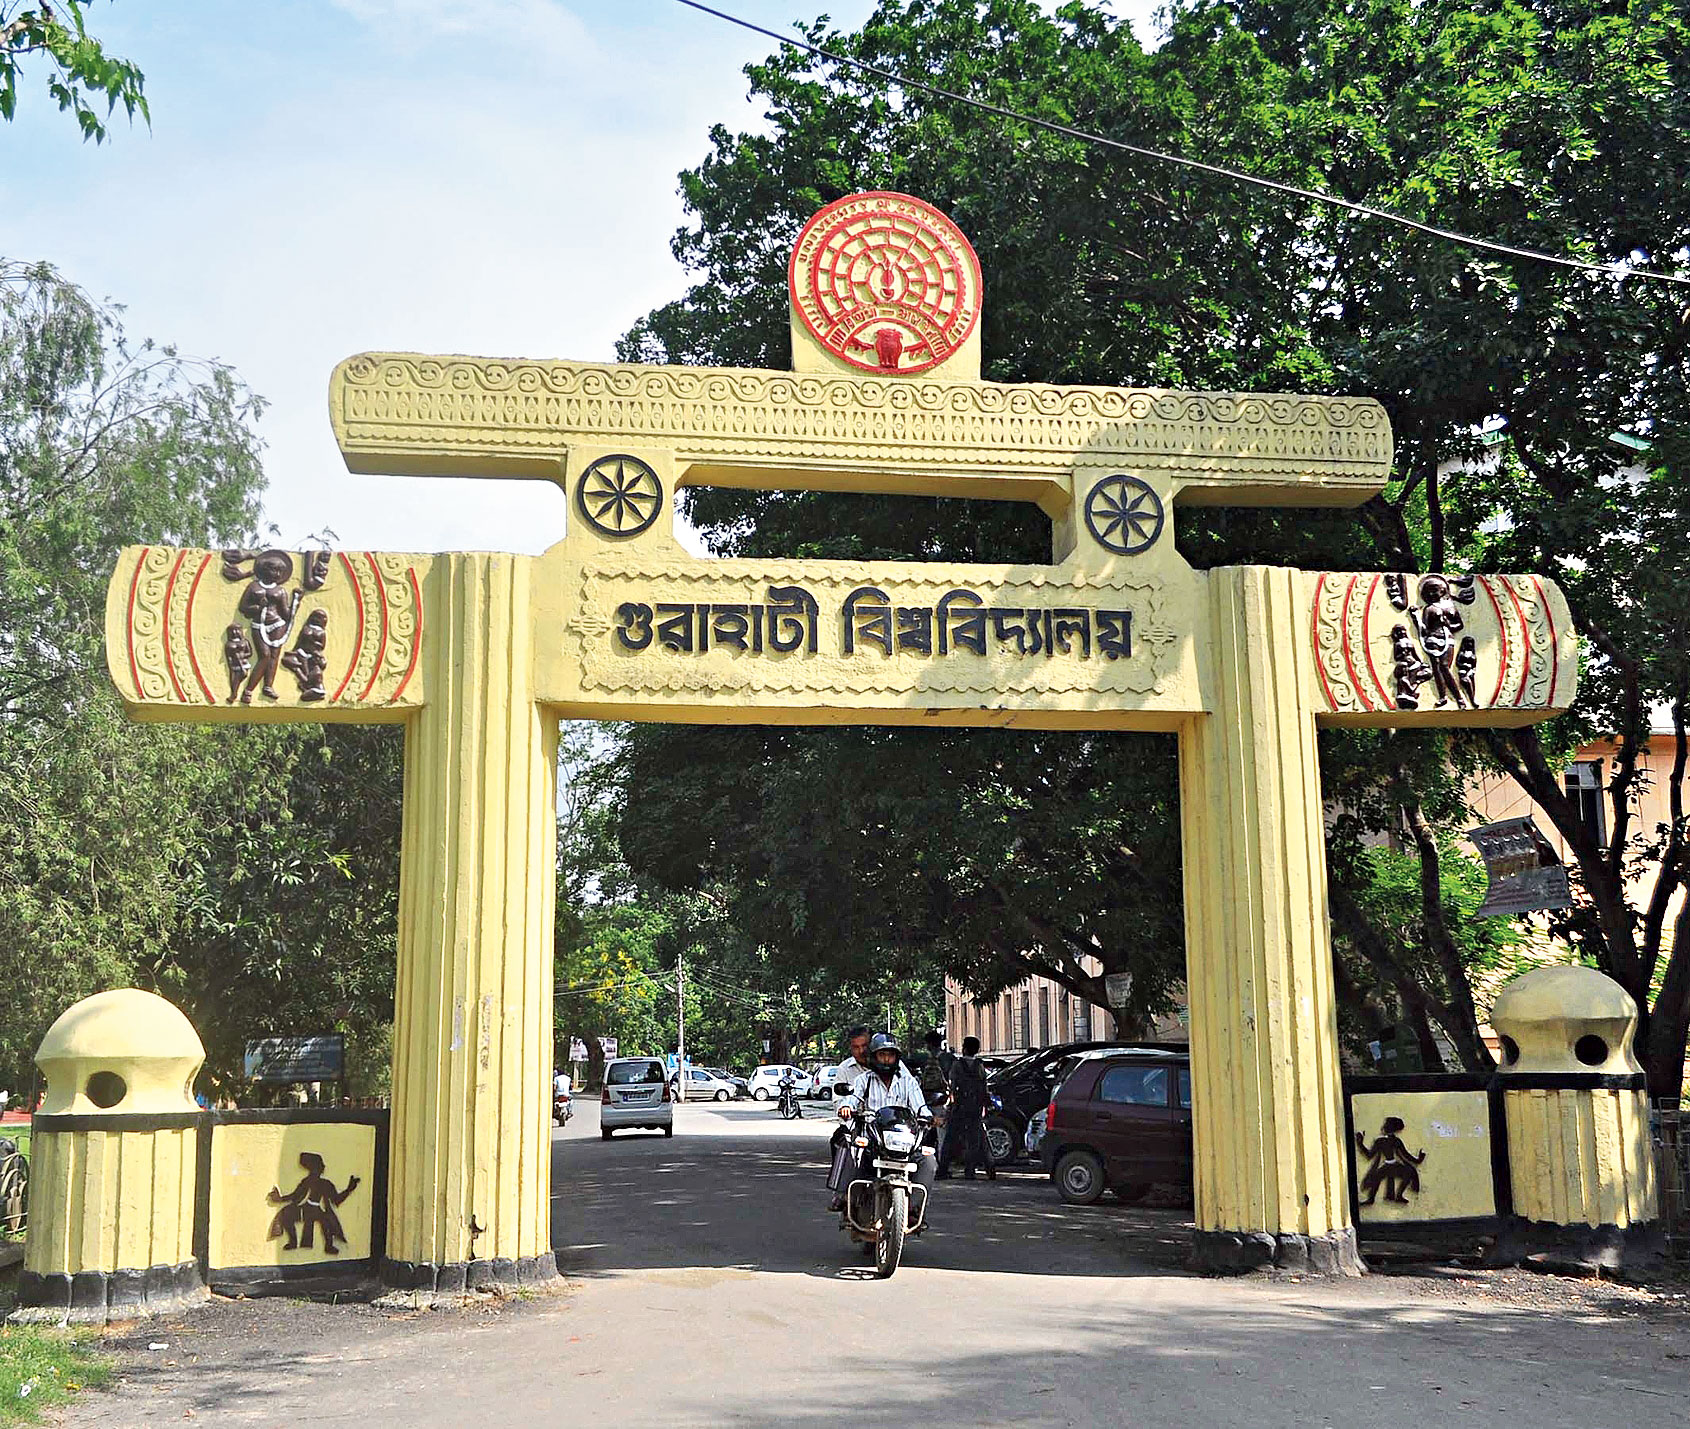 Student unions of Gauhati University, Dibrugarh University, North Eastern Hill University, Tezpur University, Assam Agriculture University, Nagaland University, Rajiv Gandhi University and the North Eastern Regional Institute of Science and Technology have called the boycott.